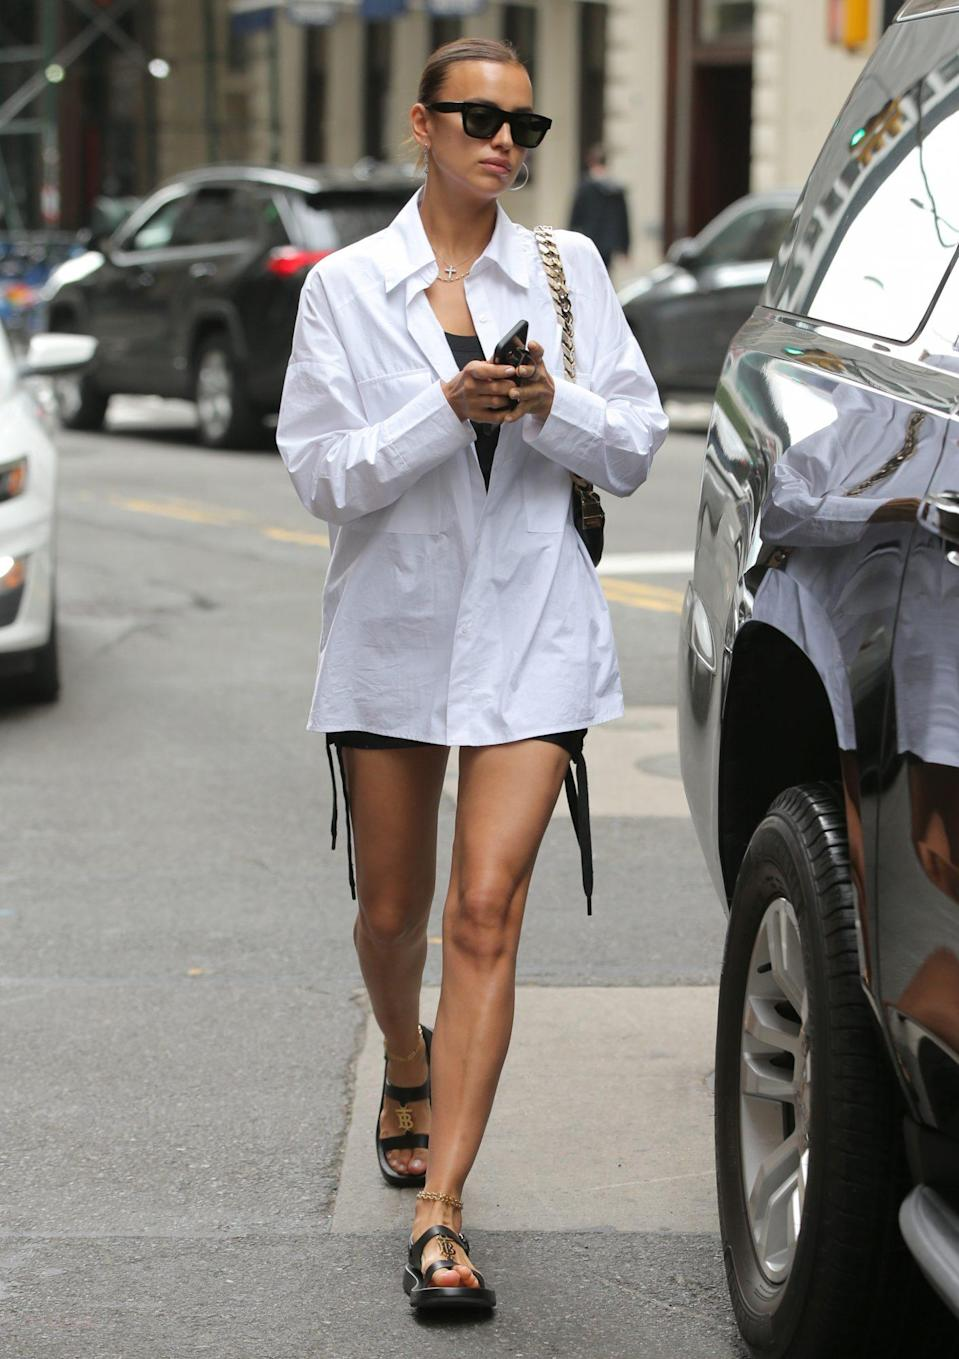 <p>Irina Shayk leaves an office building in N.Y.C. wearing an oversized top, shorts and sandals on June 22. </p>